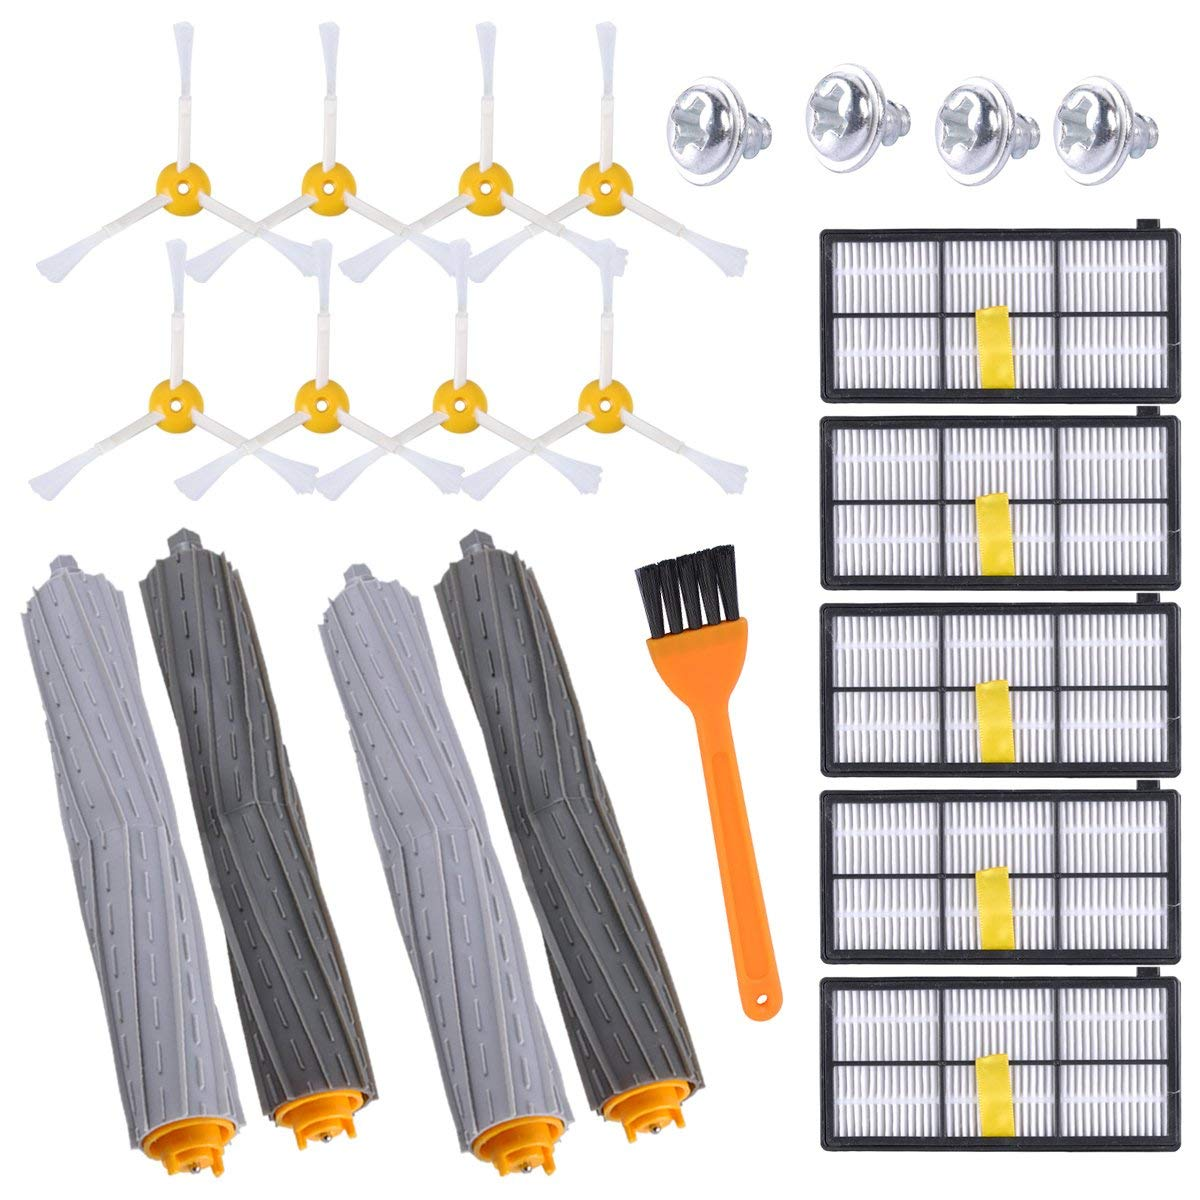 LOVECO 800 /& 900 Series Replacement Parts Kit for 860 870 880 890 960 980 990 Vacuum Cleaner,6 Filter,6 Side Brush,1 Debris Extractor in The Accessory Kit